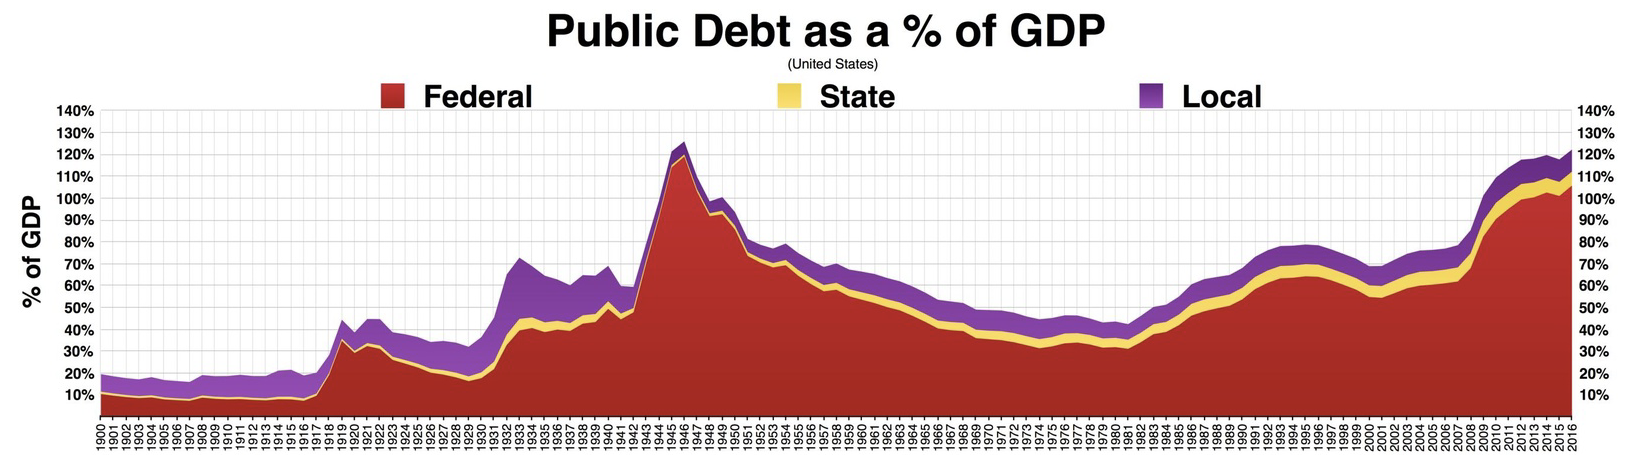 Public Debt as a % of GDP chart